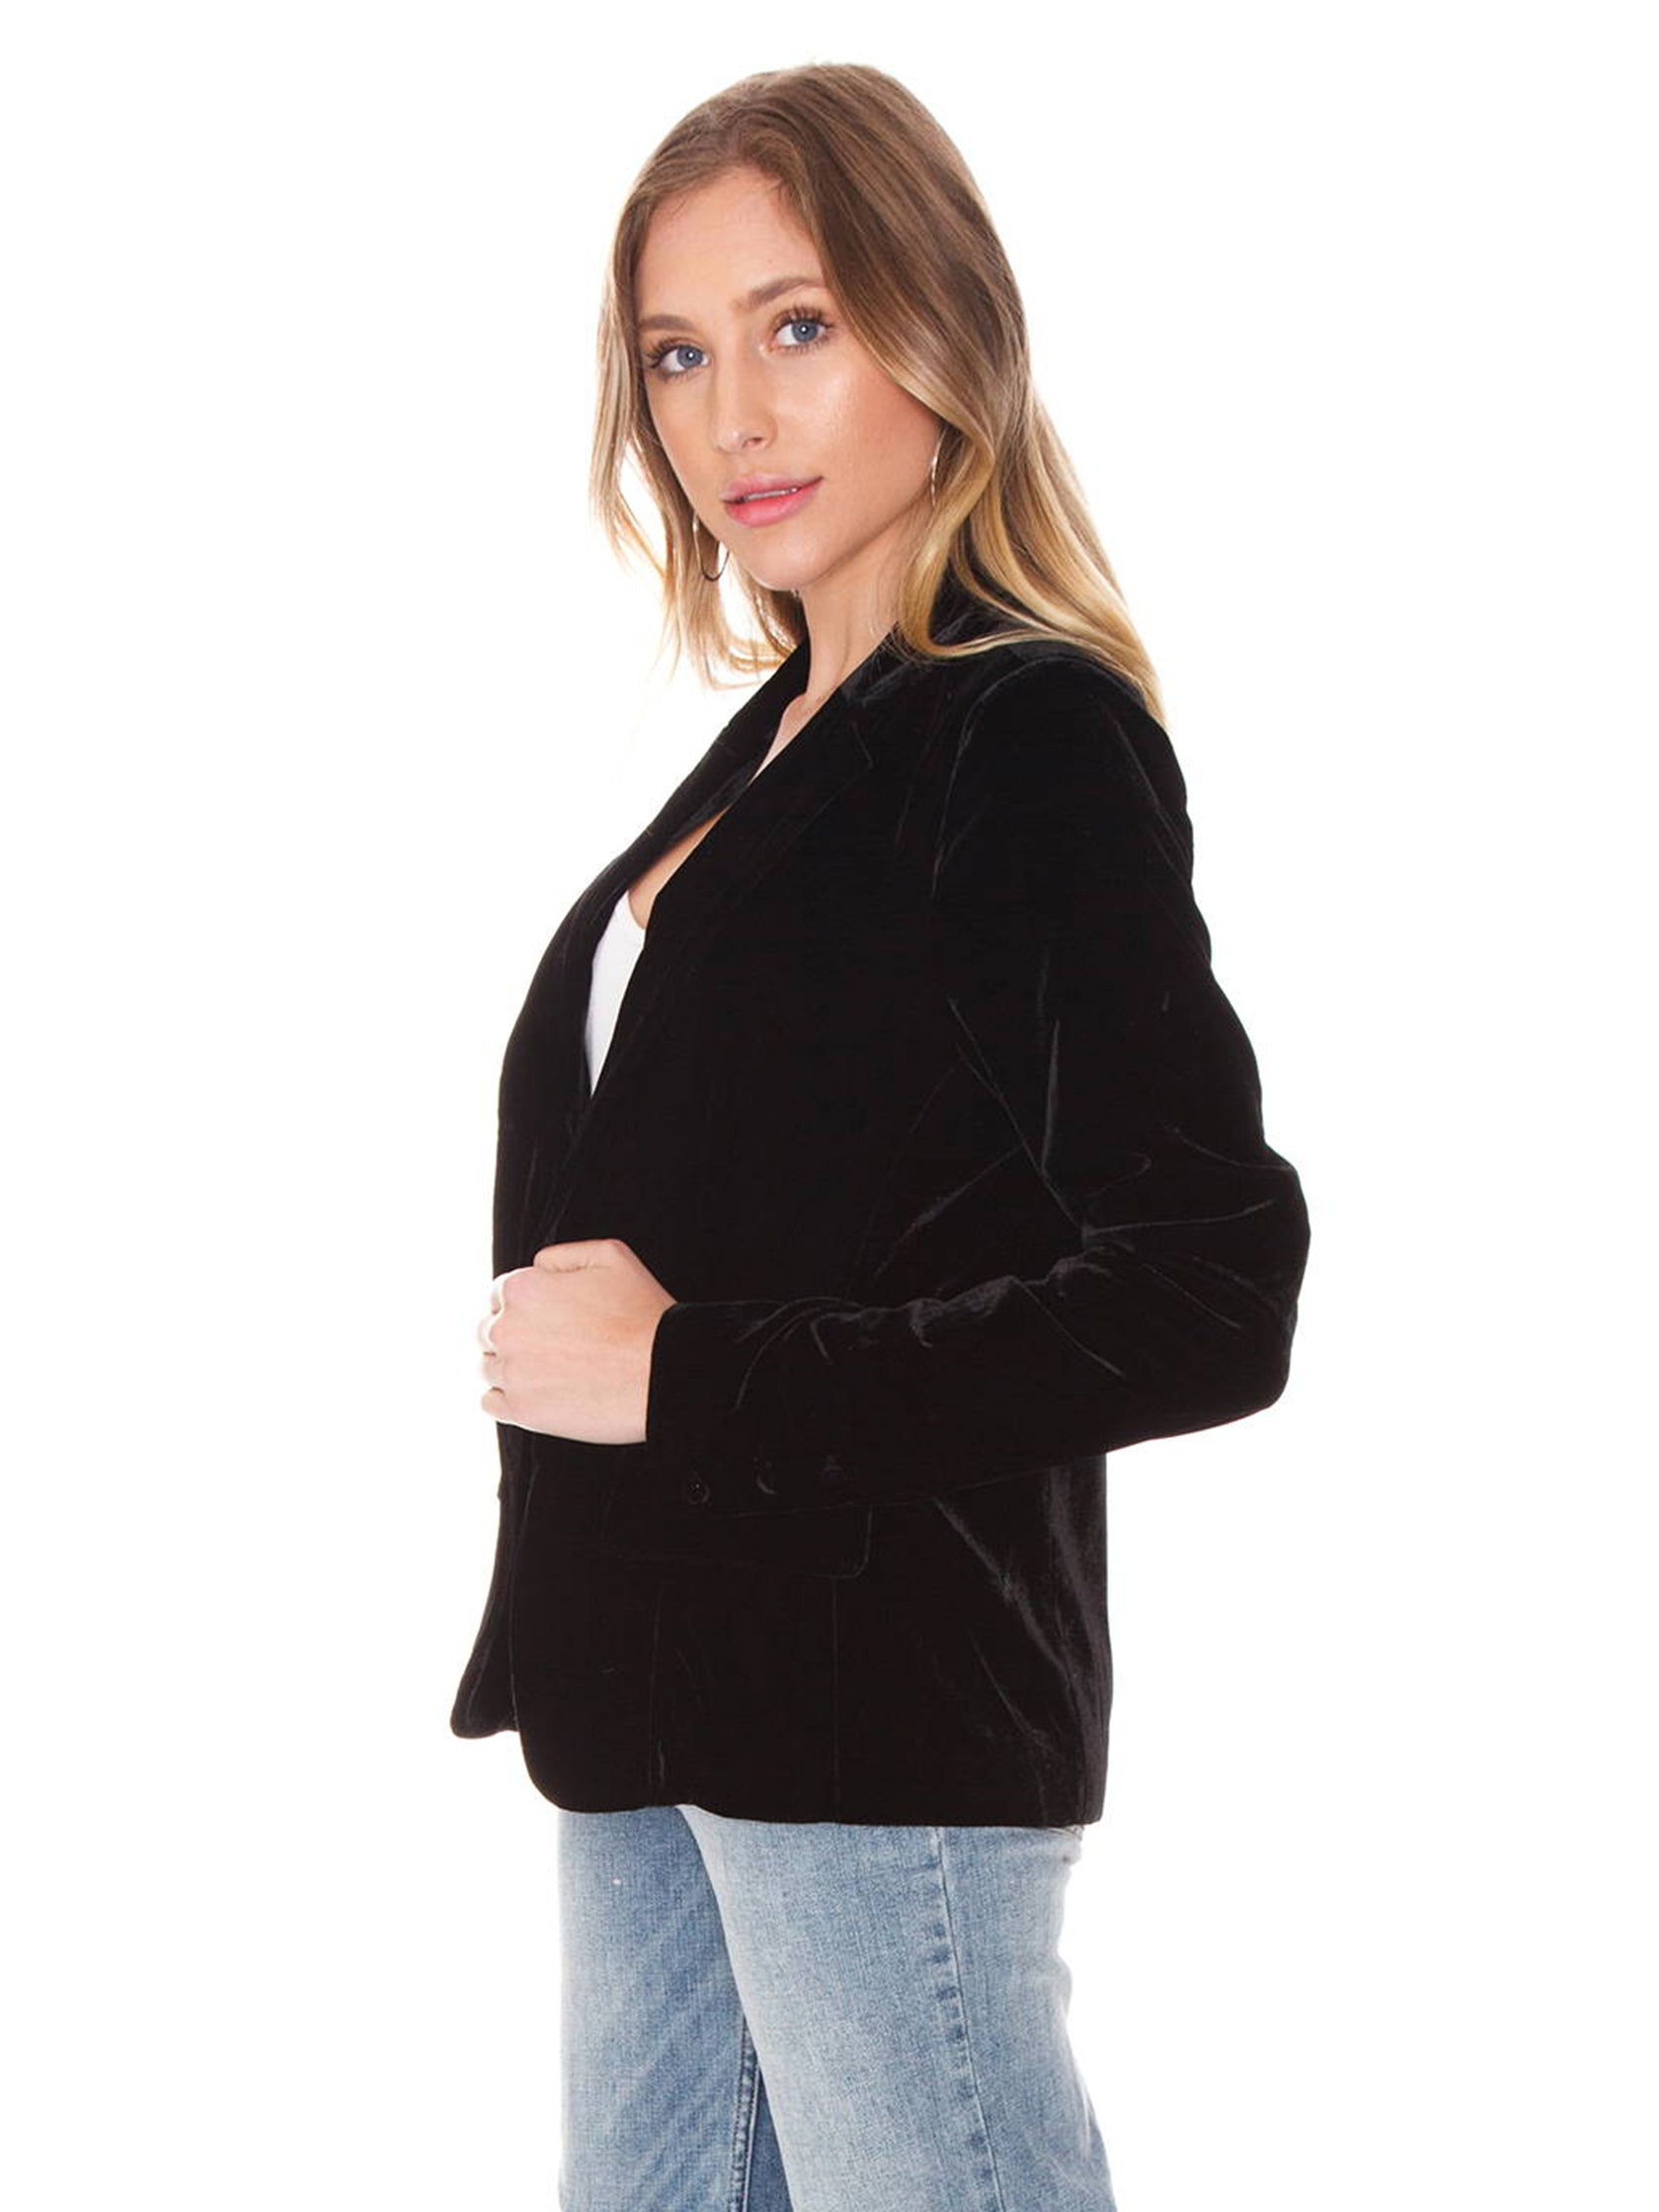 Women wearing a blazer rental from For Love & Lemons called Viva Velvet Blazer